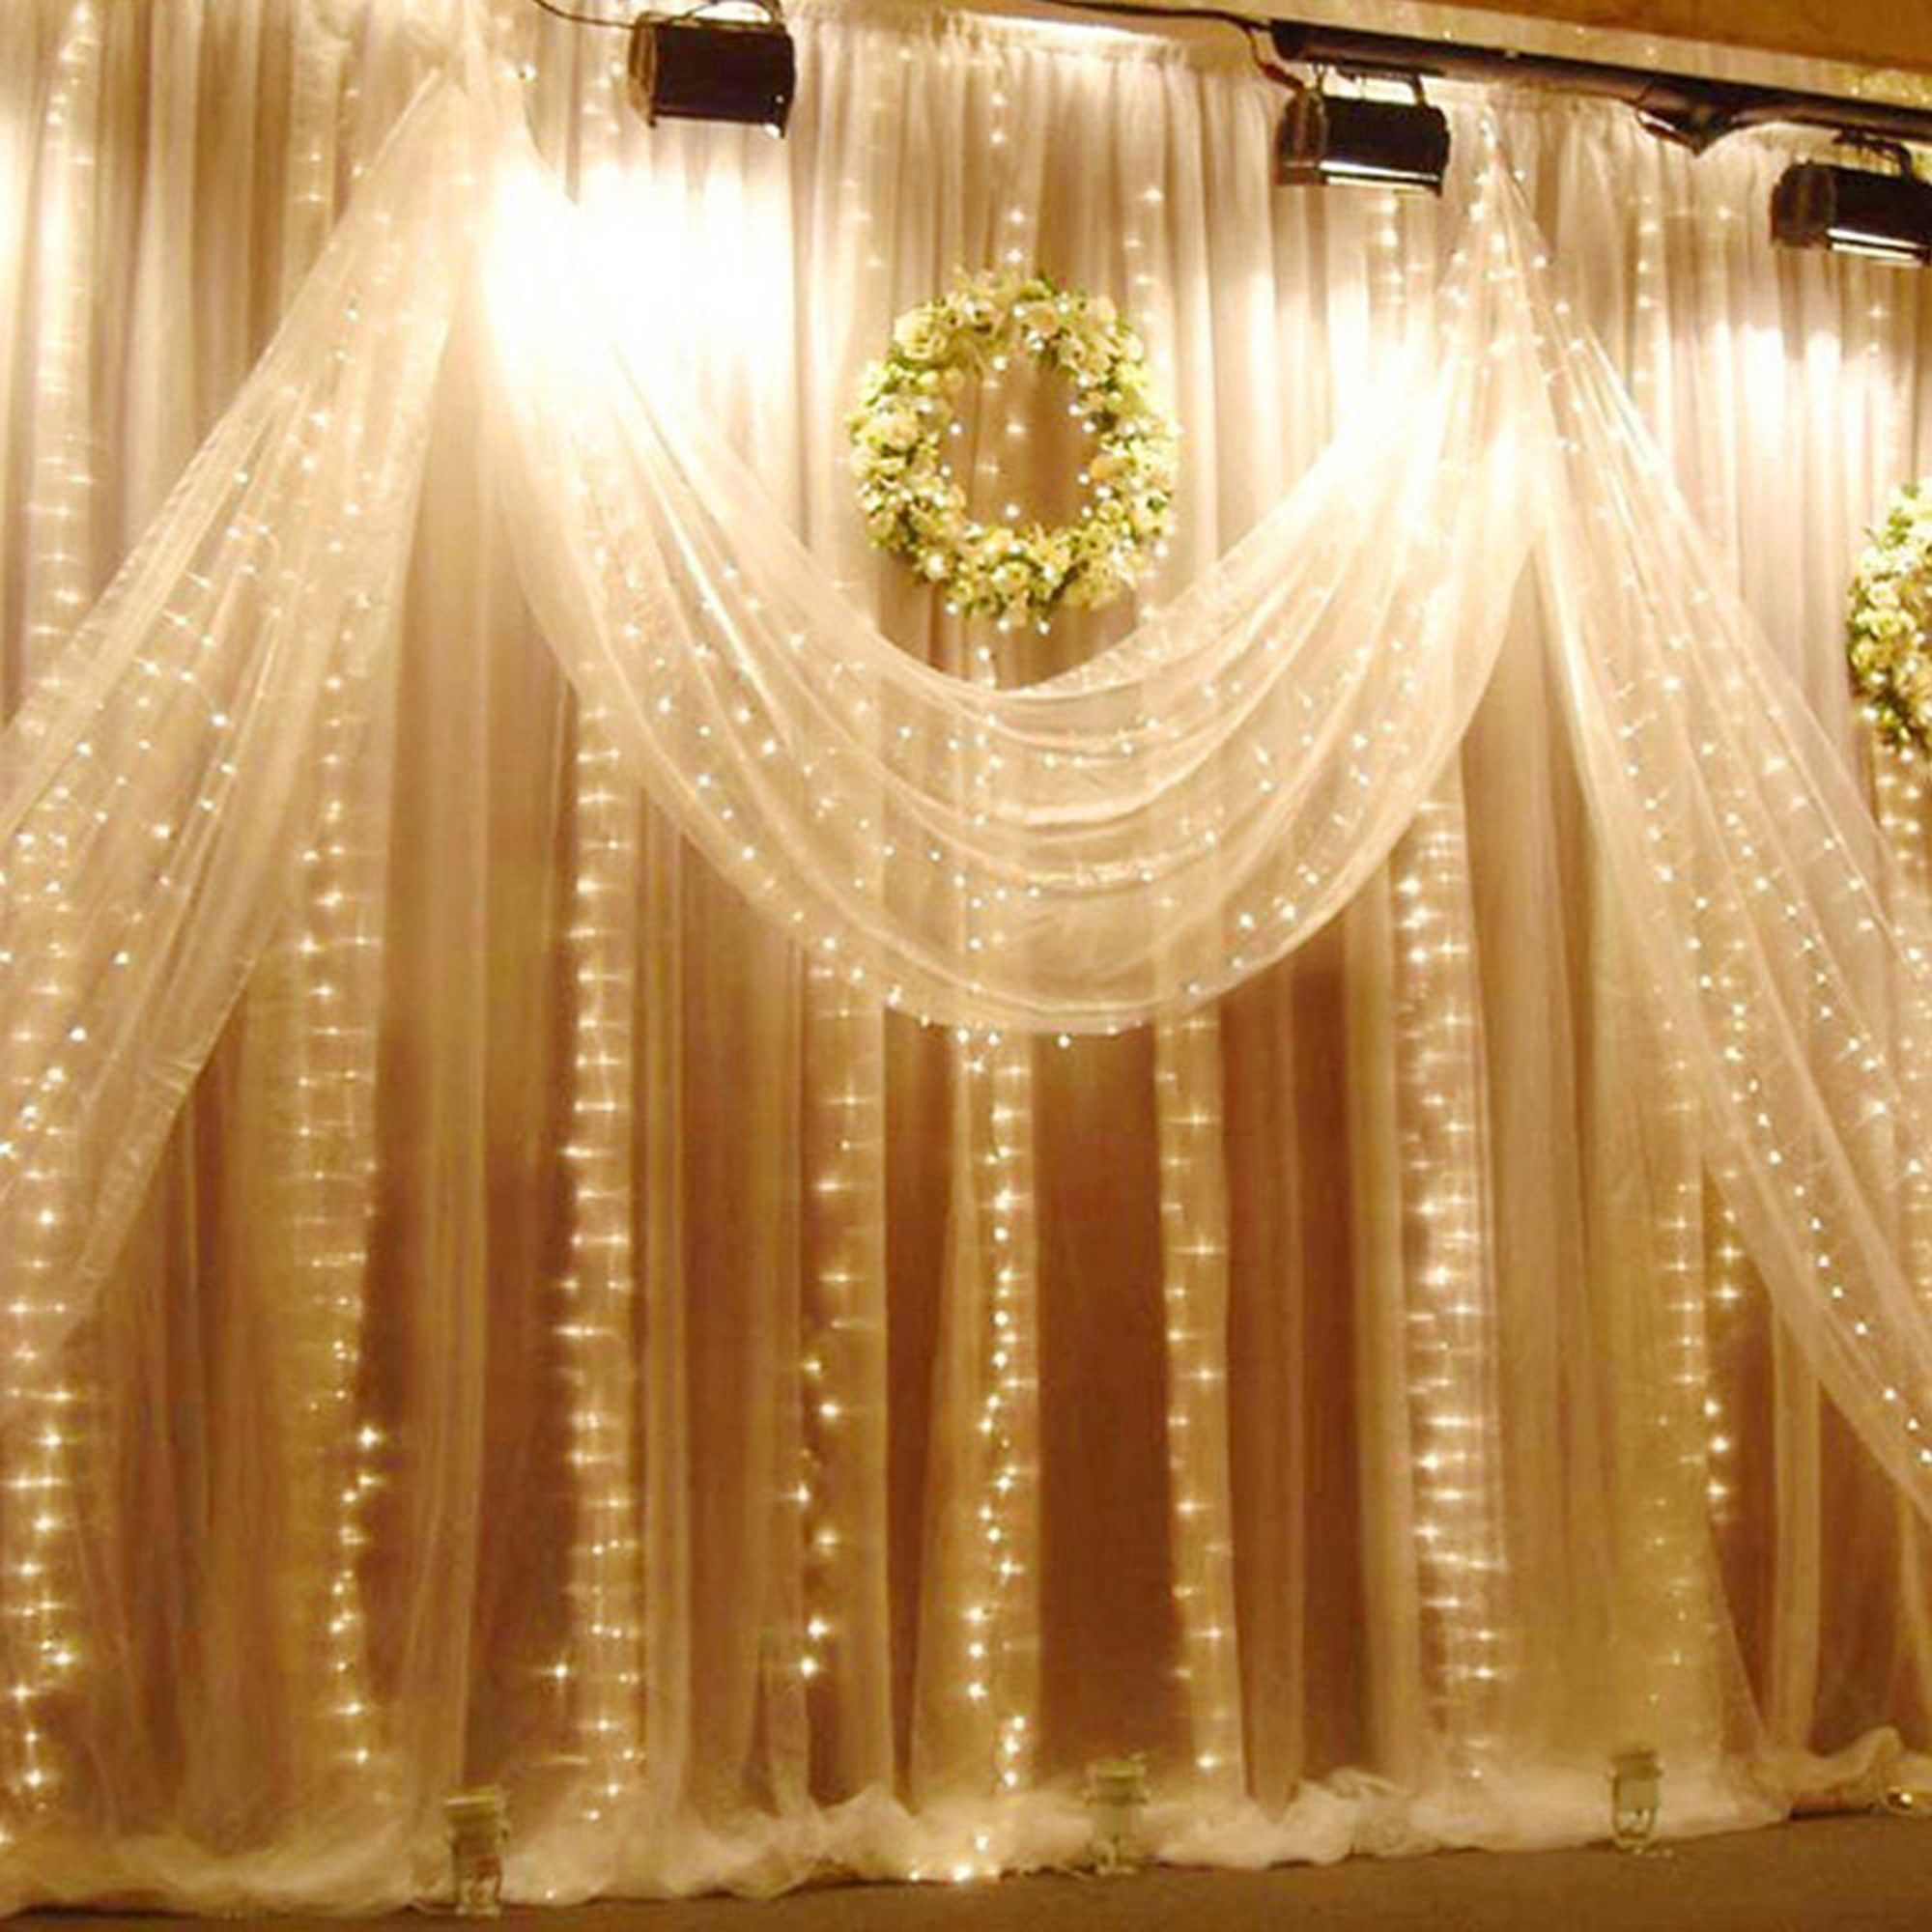 Garden wedding stage decoration  Fairy Lights For Outdoor Wedding  Wedding Ideas  Pinterest  Weddings